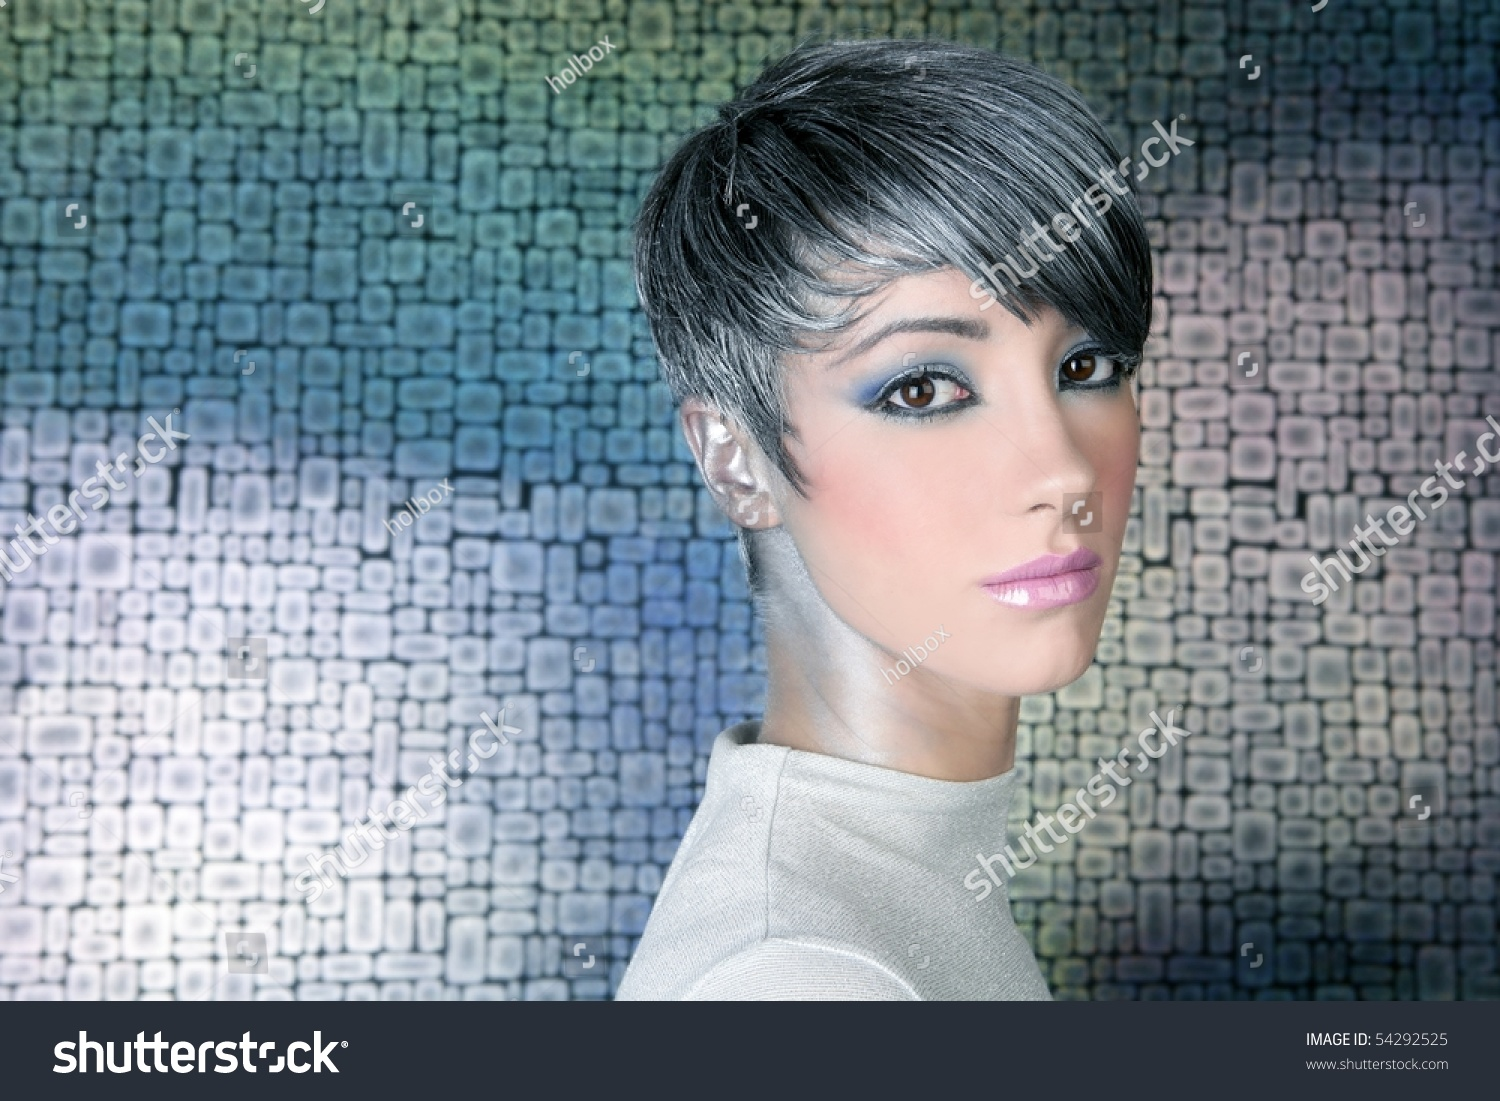 Silver Futuristic Hairstyle Makeup Portrait Future People Stock Image 54292525